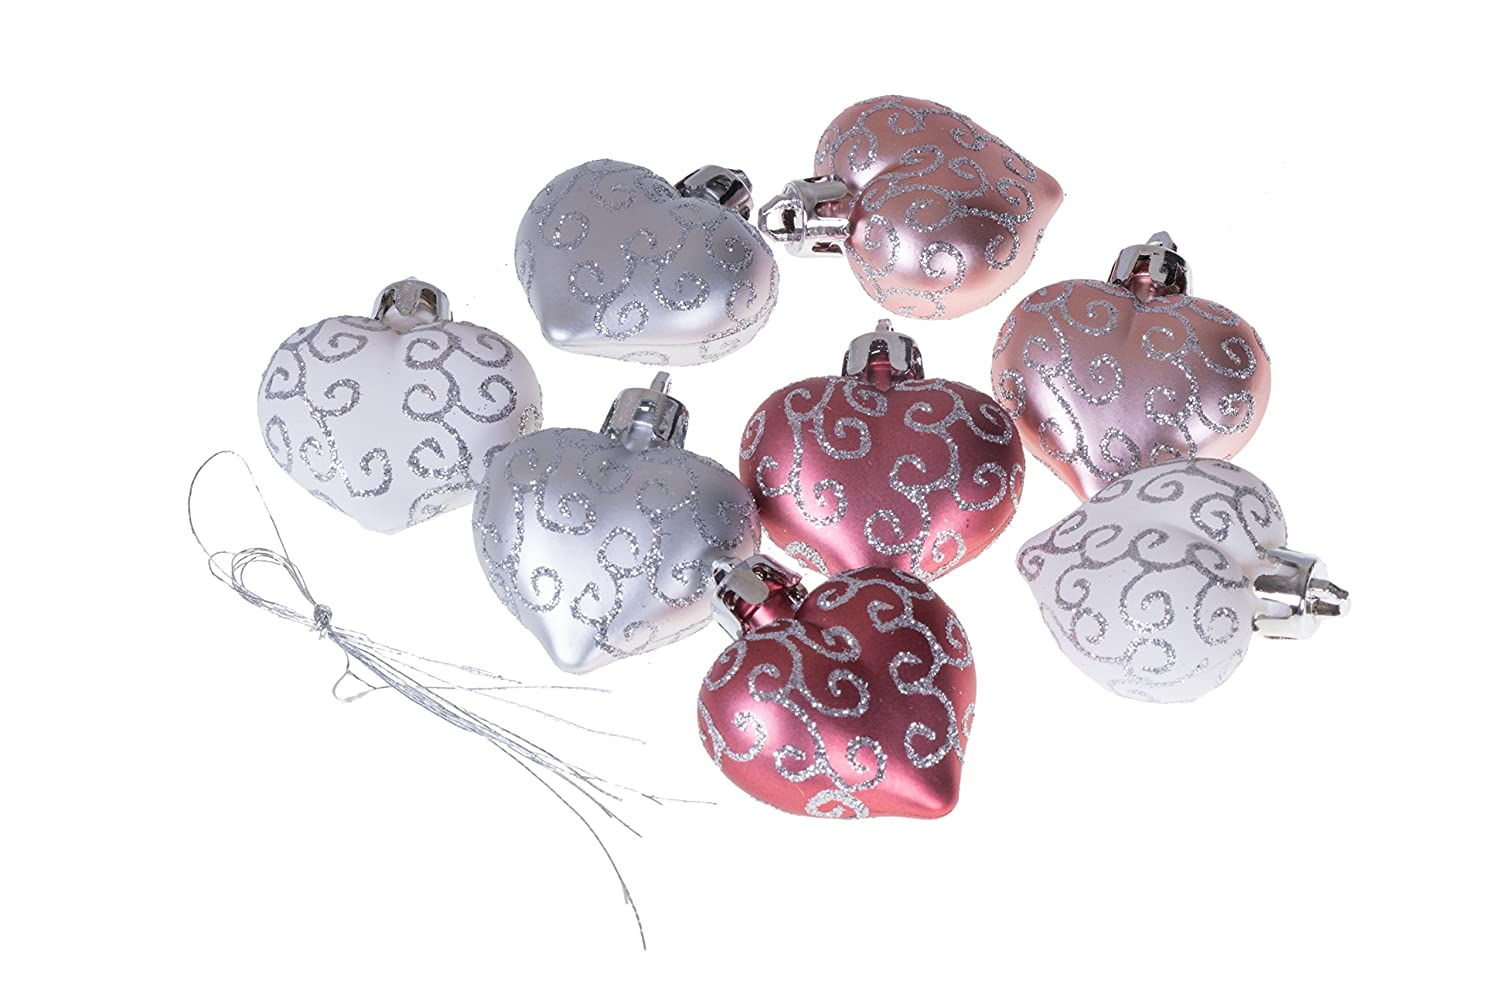 8 Pack Lightweight Shatter Resistant Design Festive Holiday Decor Hangers Included No Model 2 Tall Clever Creations Christmas Heart Ornament Set Small Pink and White Heart with Glitter